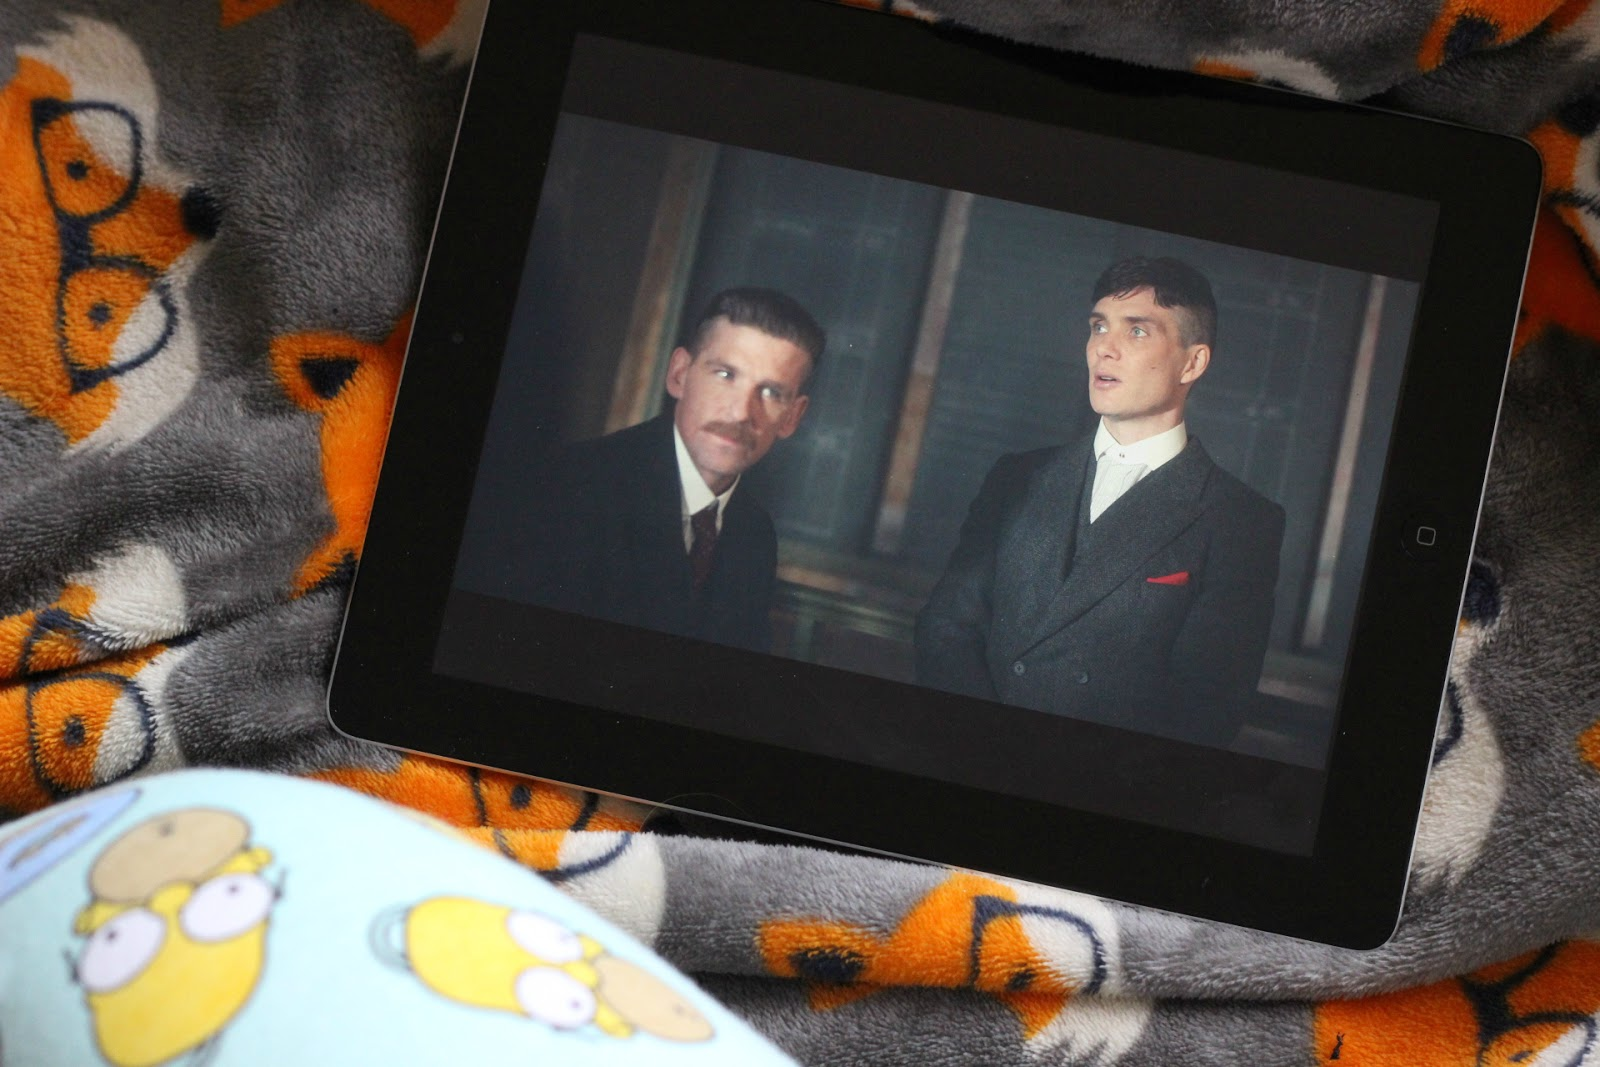 Peaky Blinders on ipad